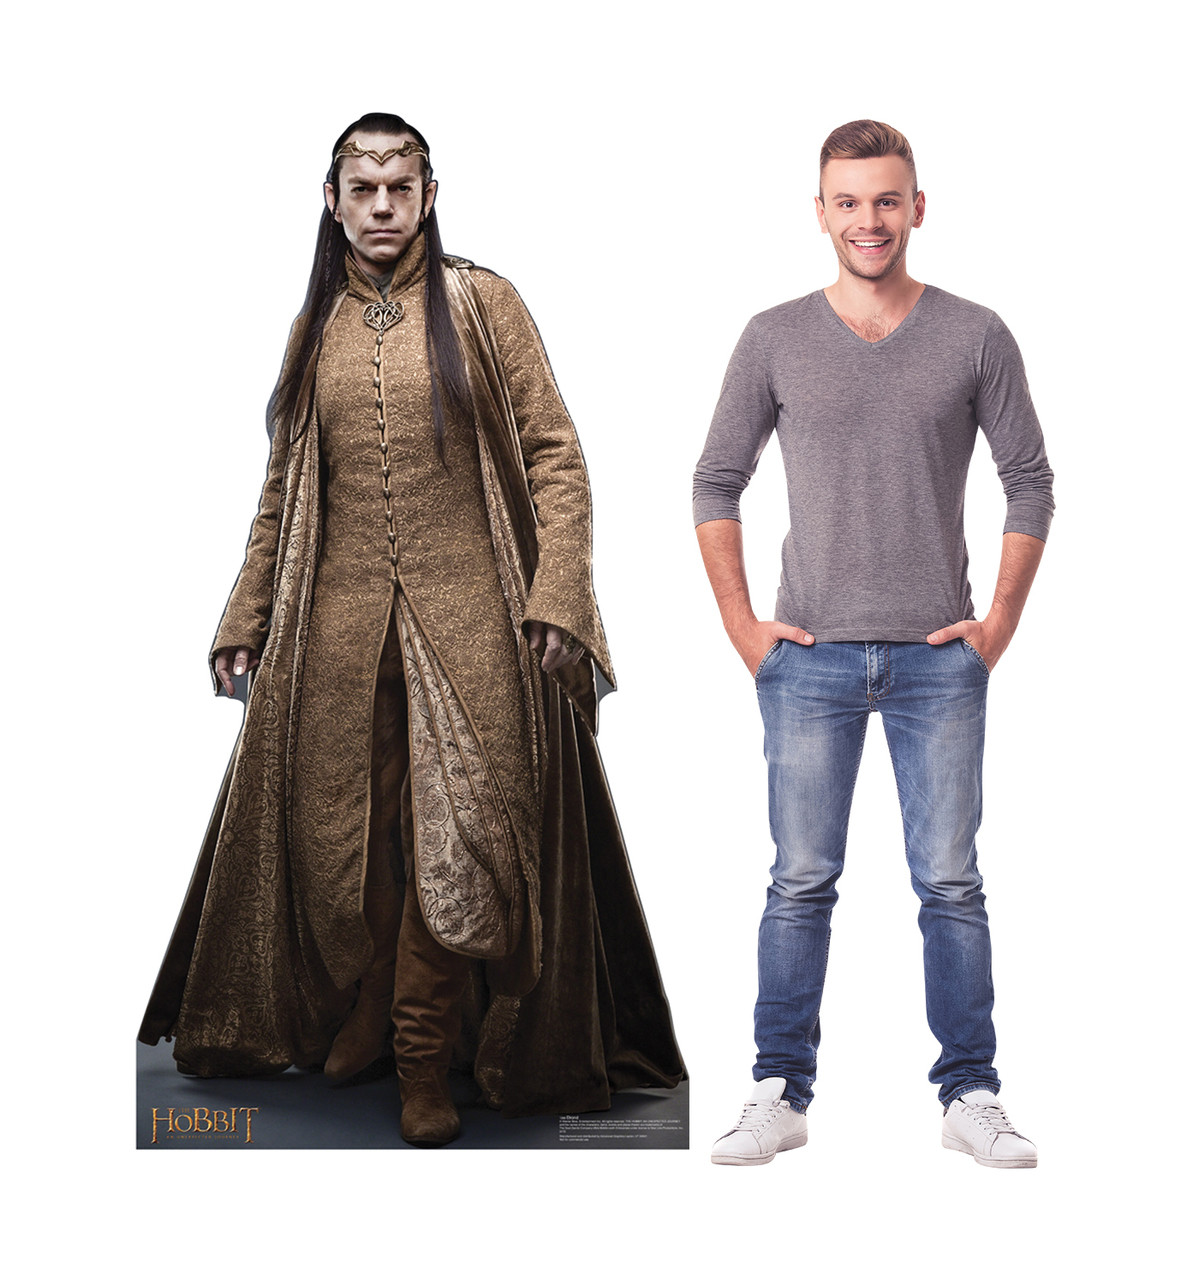 Life-size Elrond - The Hobbit Cardboard Standup